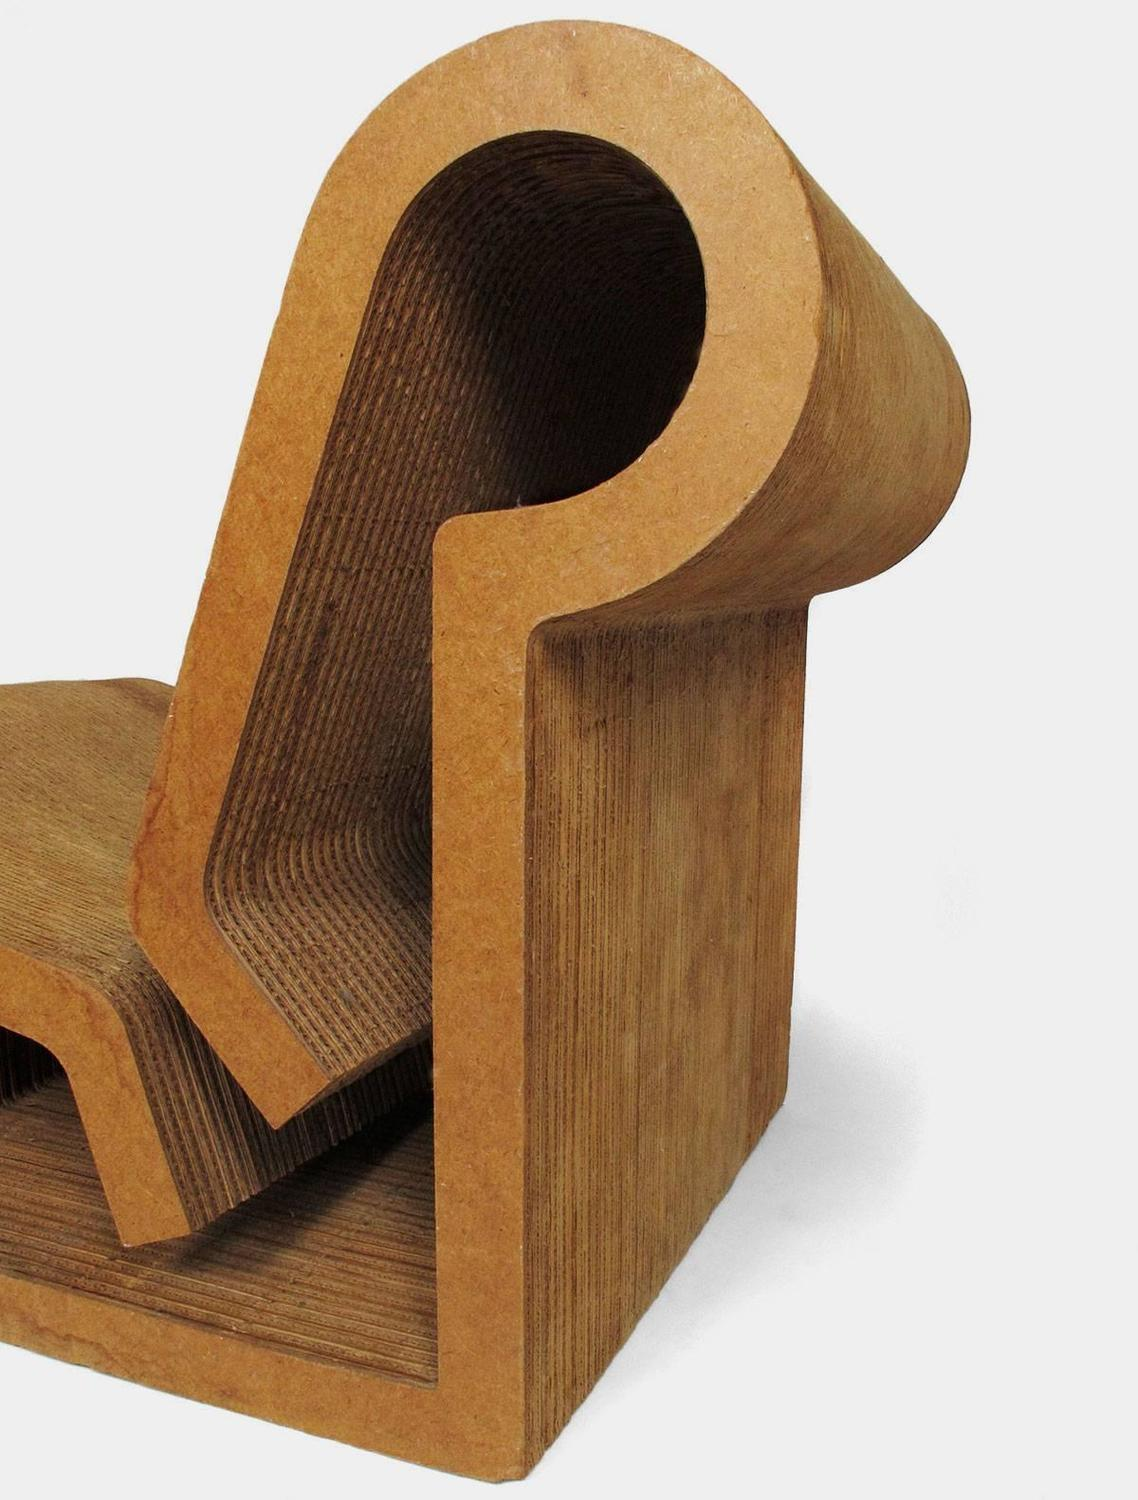 frank gehry cardboard chairs sky chair stand quoteasy edges quot contour for sale at 1stdibs